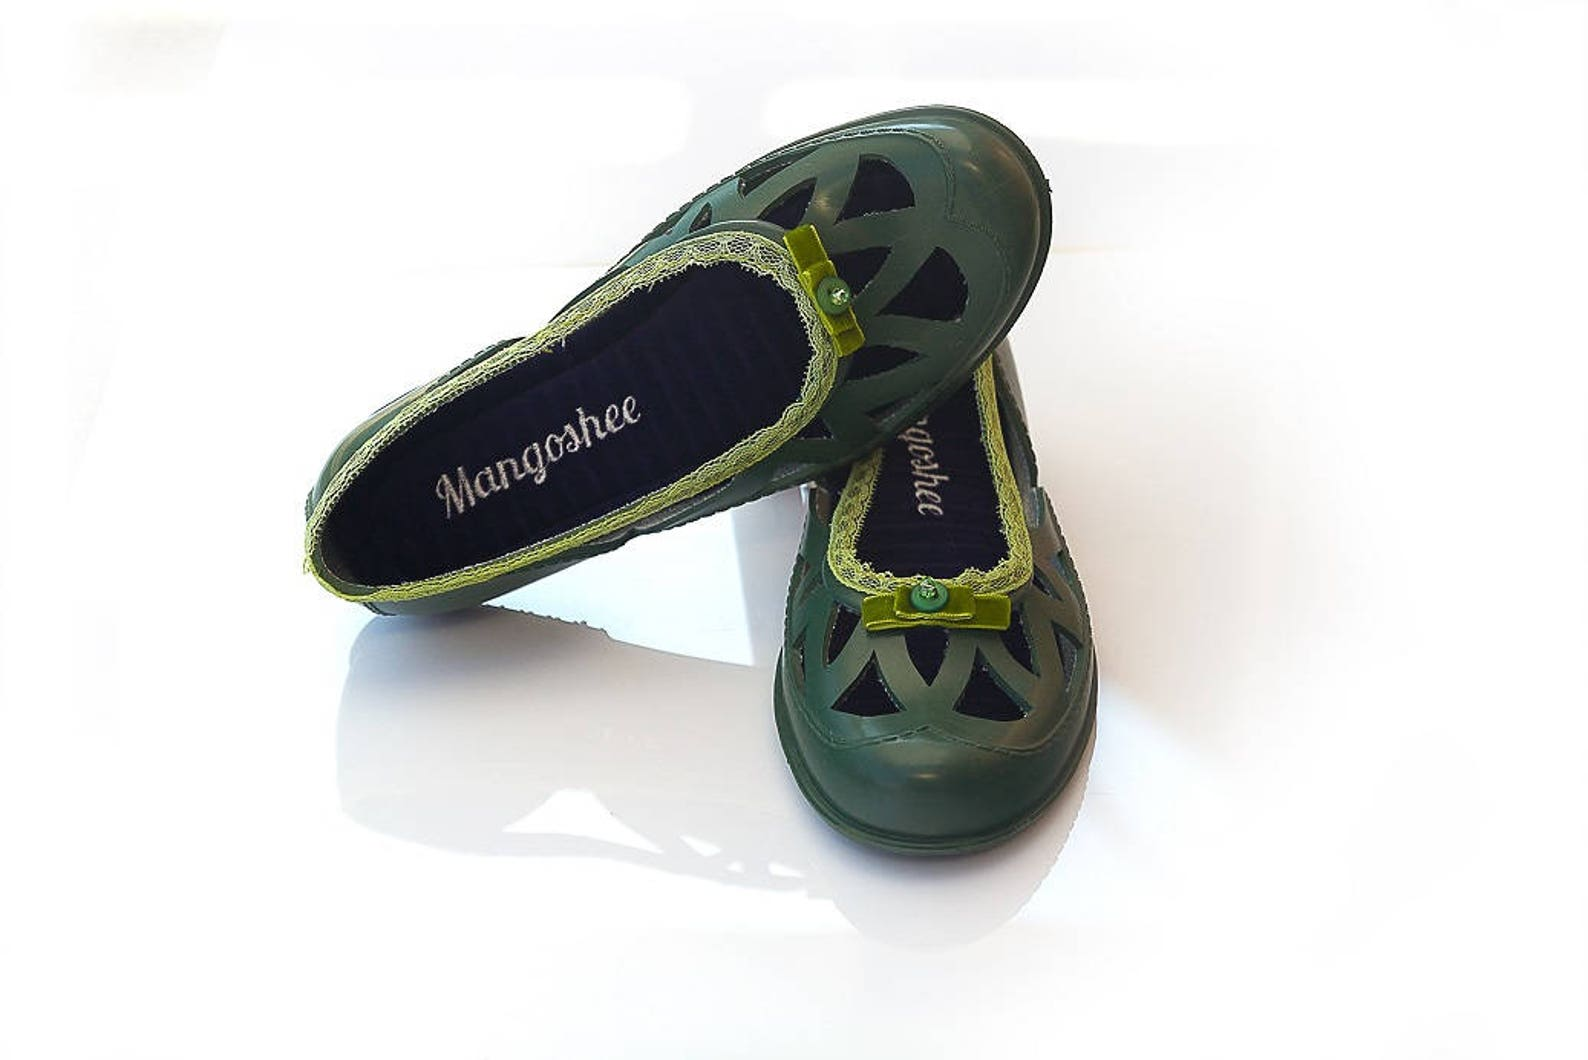 barefoot shoes, green shoes, summer shoes, flat shoes, soft shoes, ballet flats, slip in shoes, retro shoes, bead shoes, rubber